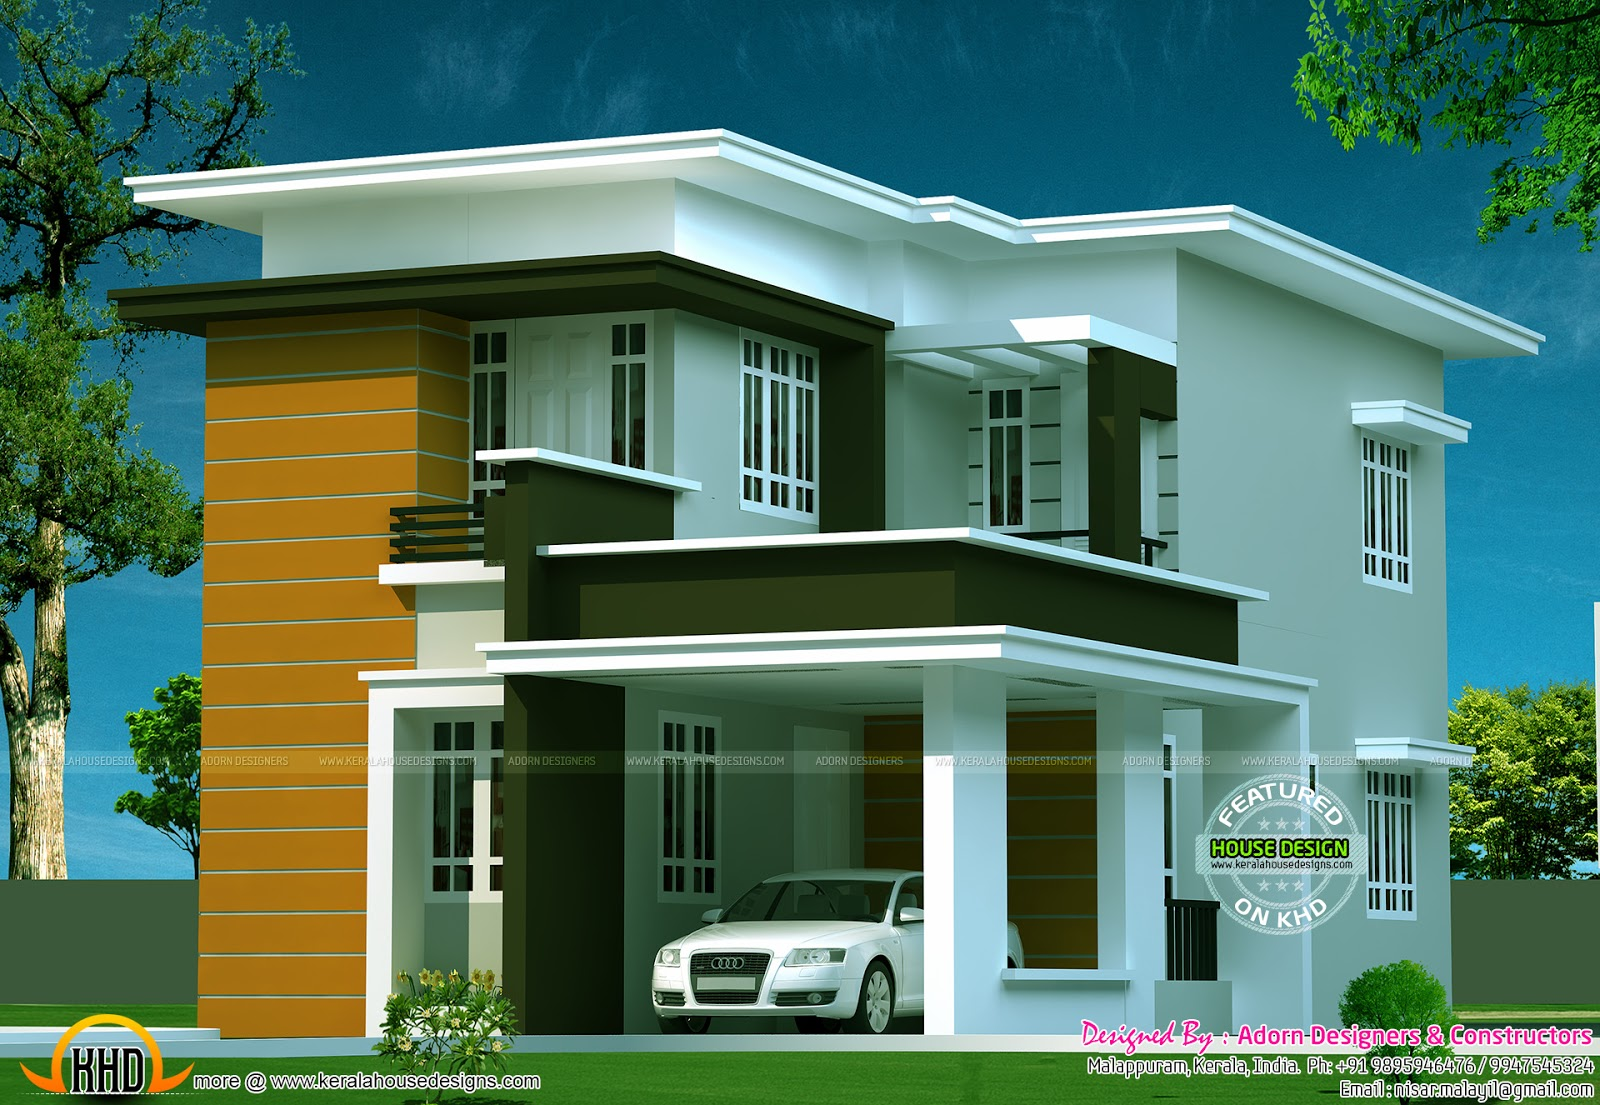 New flat roof house kerala home design and floor plans for Apartment roof design